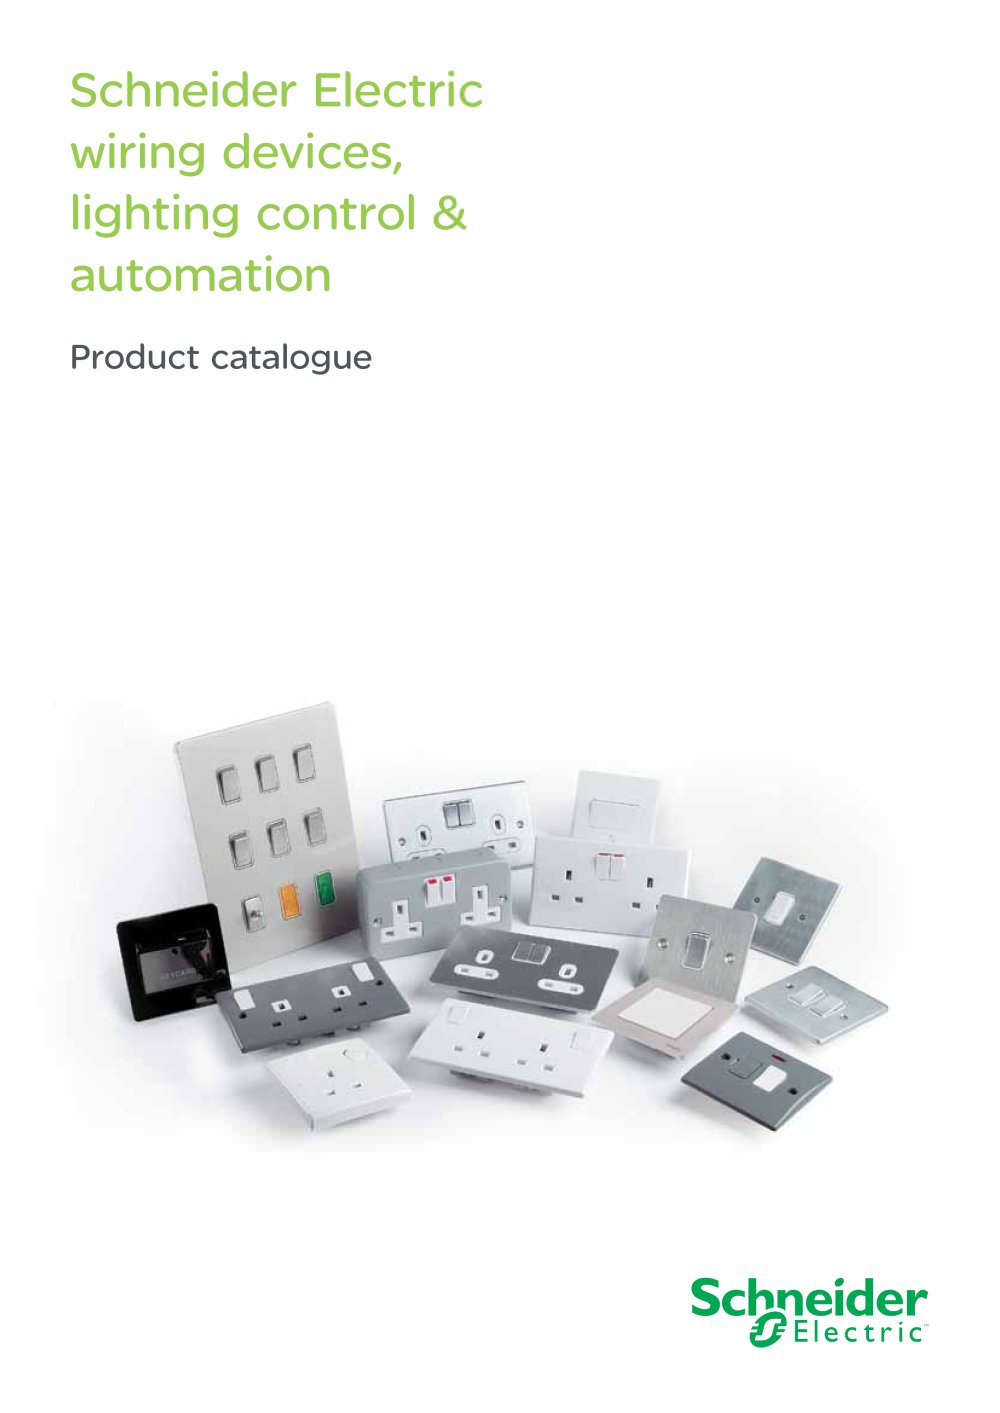 schneider electric wiring devices lighting control automation rh pdf archiexpo com Life Is On Schneider Electric wiring devices schneider electric